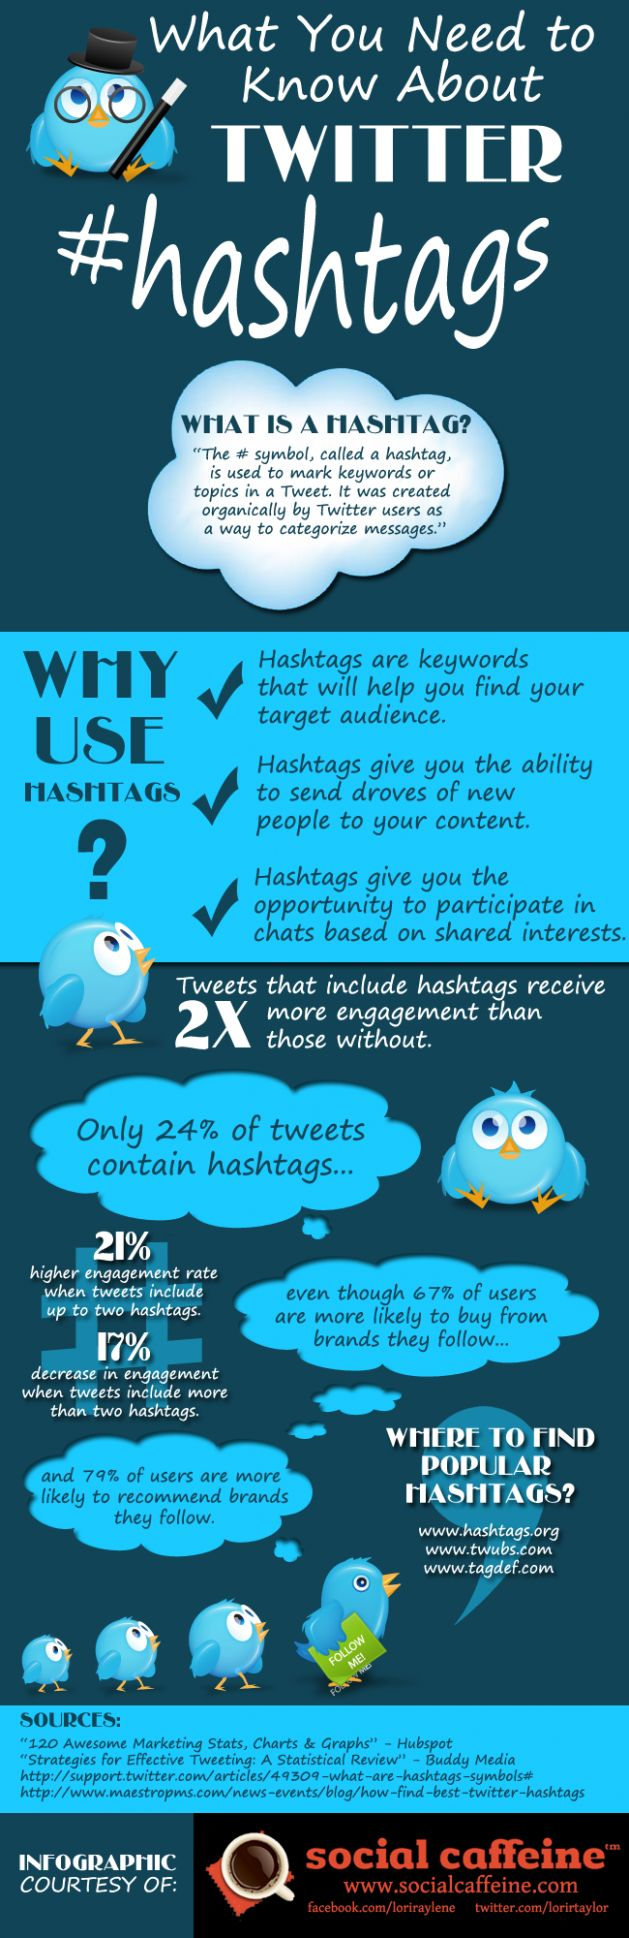 Why Use Twitter Hashtags?